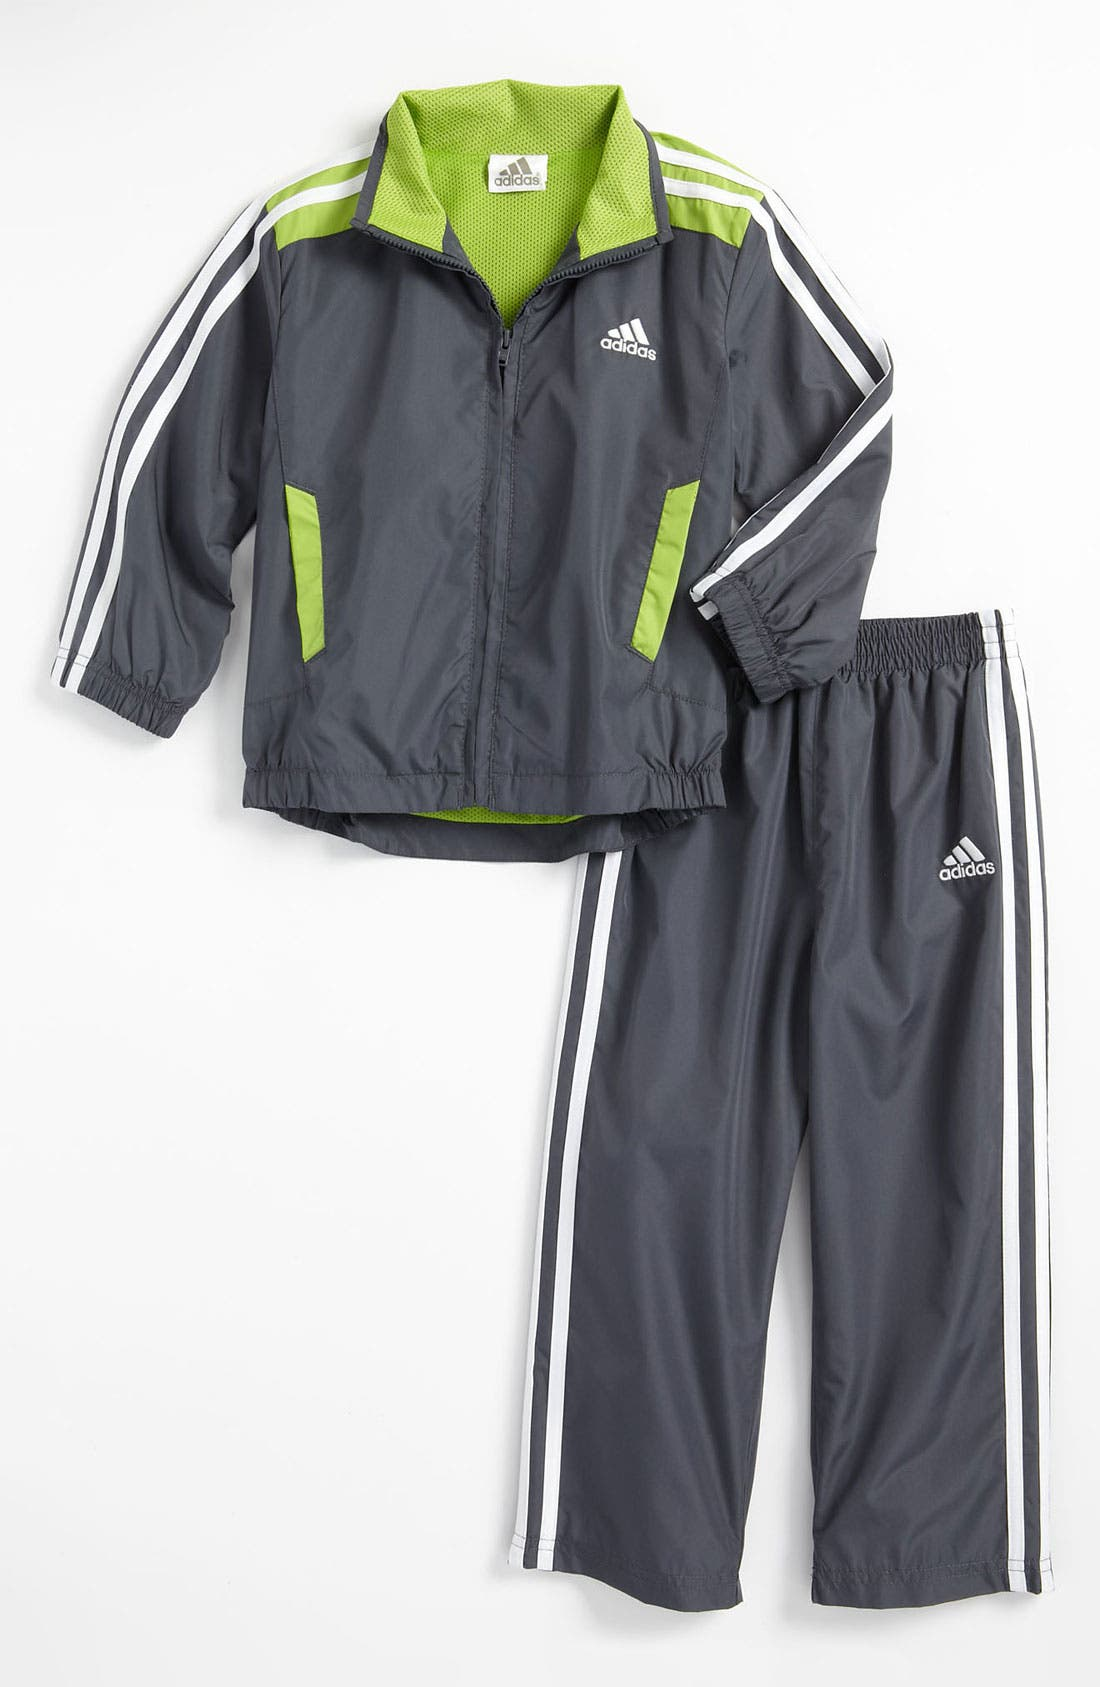 Alternate Image 1 Selected - adidas 'Essential Q15' Jacket & Pants (Toddler)